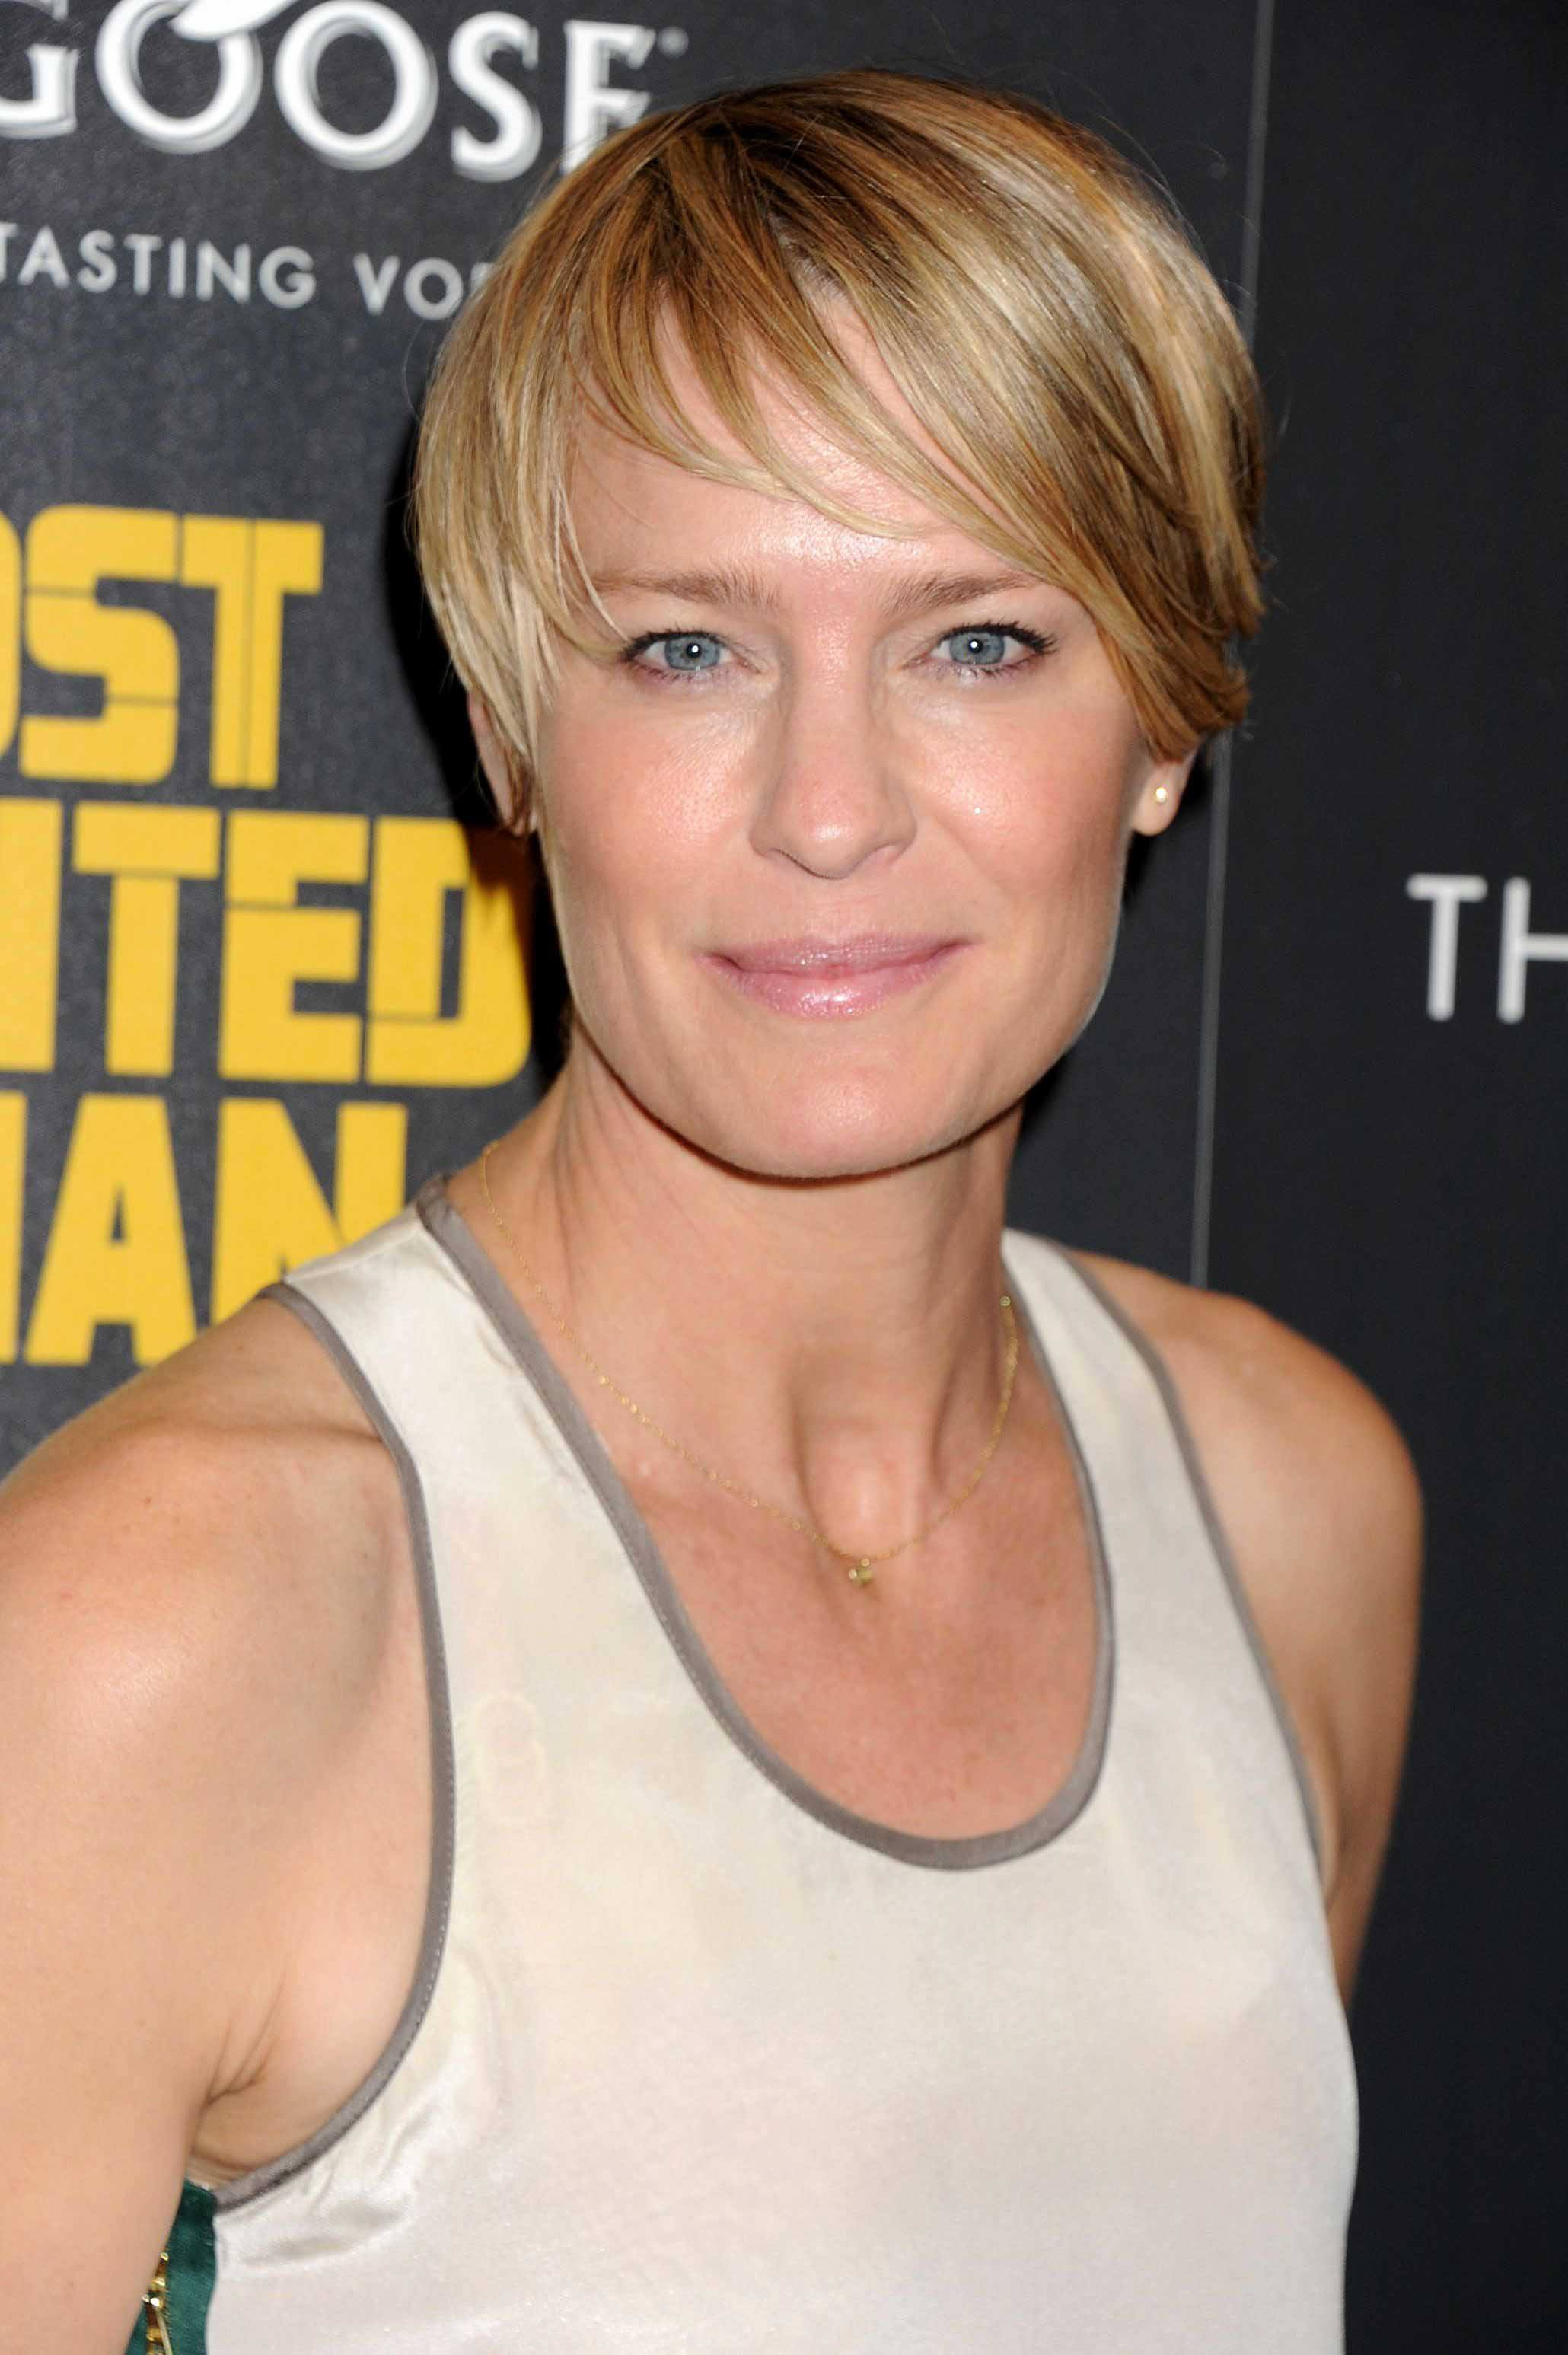 Robin Wright - blonde pixie cut with side sweeping fringe - Credit Rex by Shutterstock